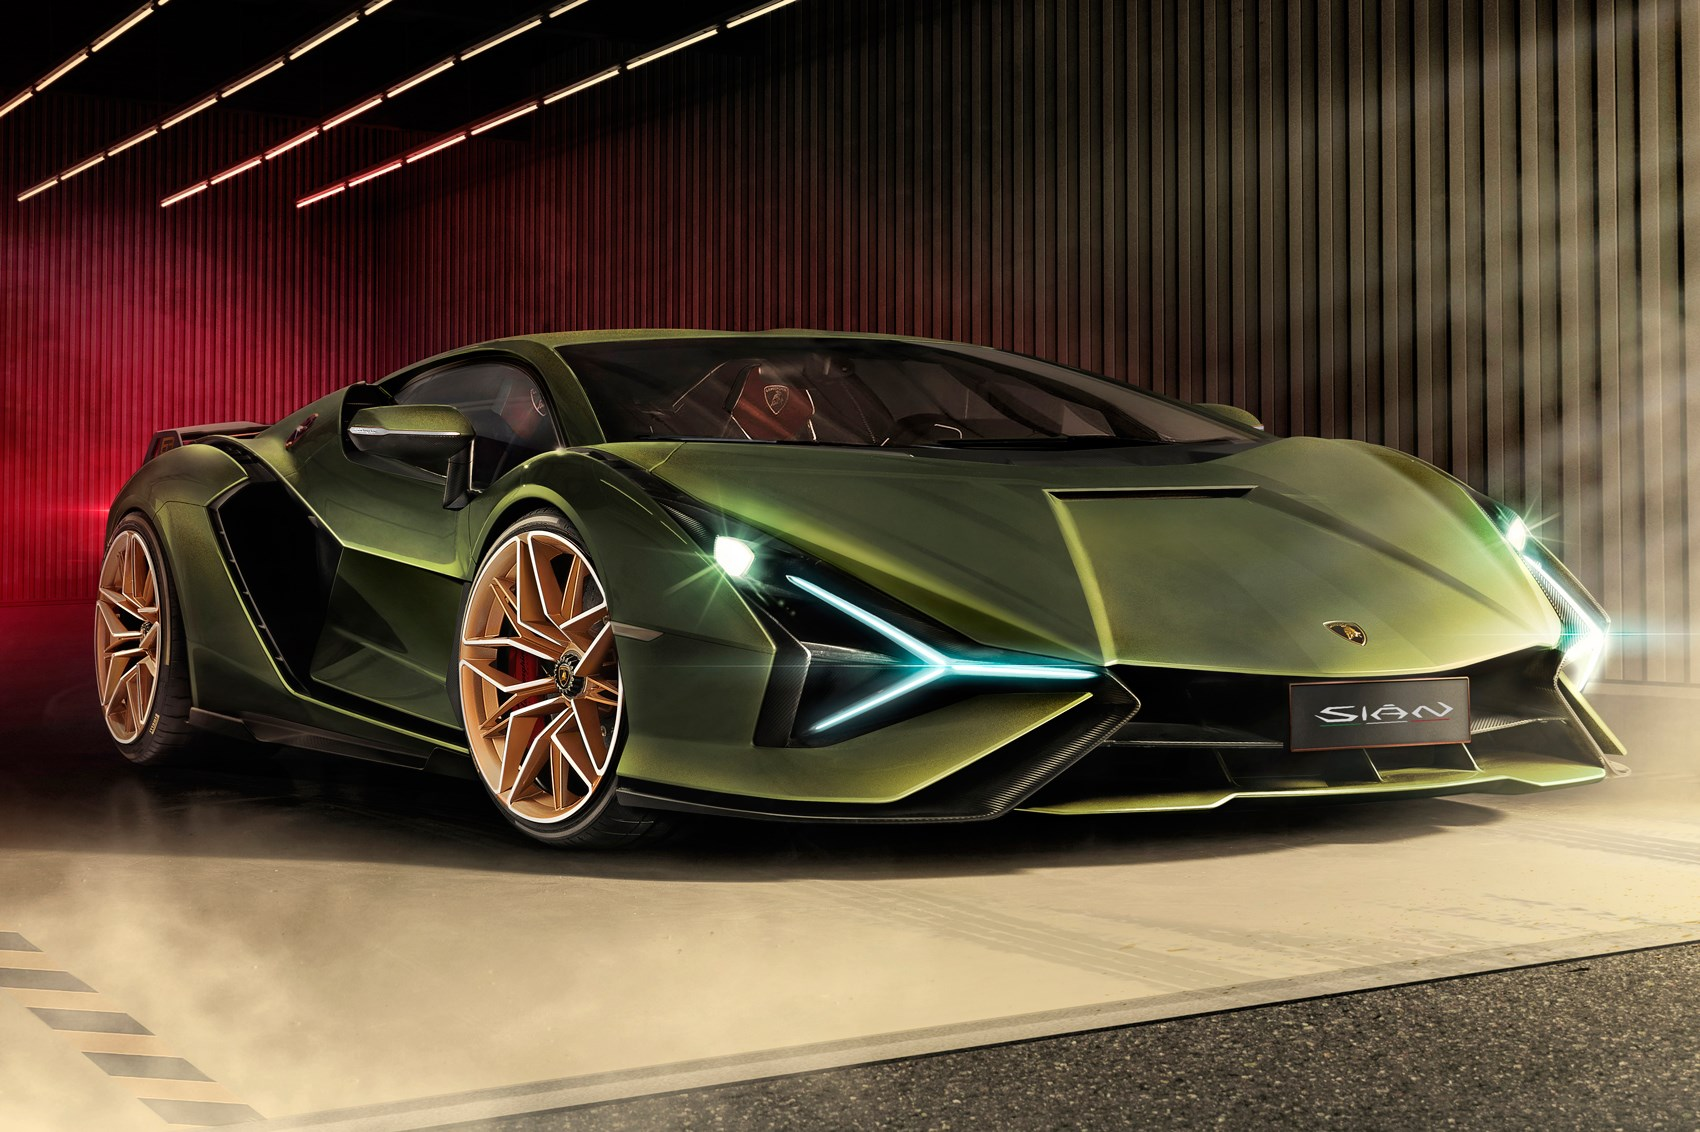 New Lamborghini Sian First Hybrid Lambo Revealed At